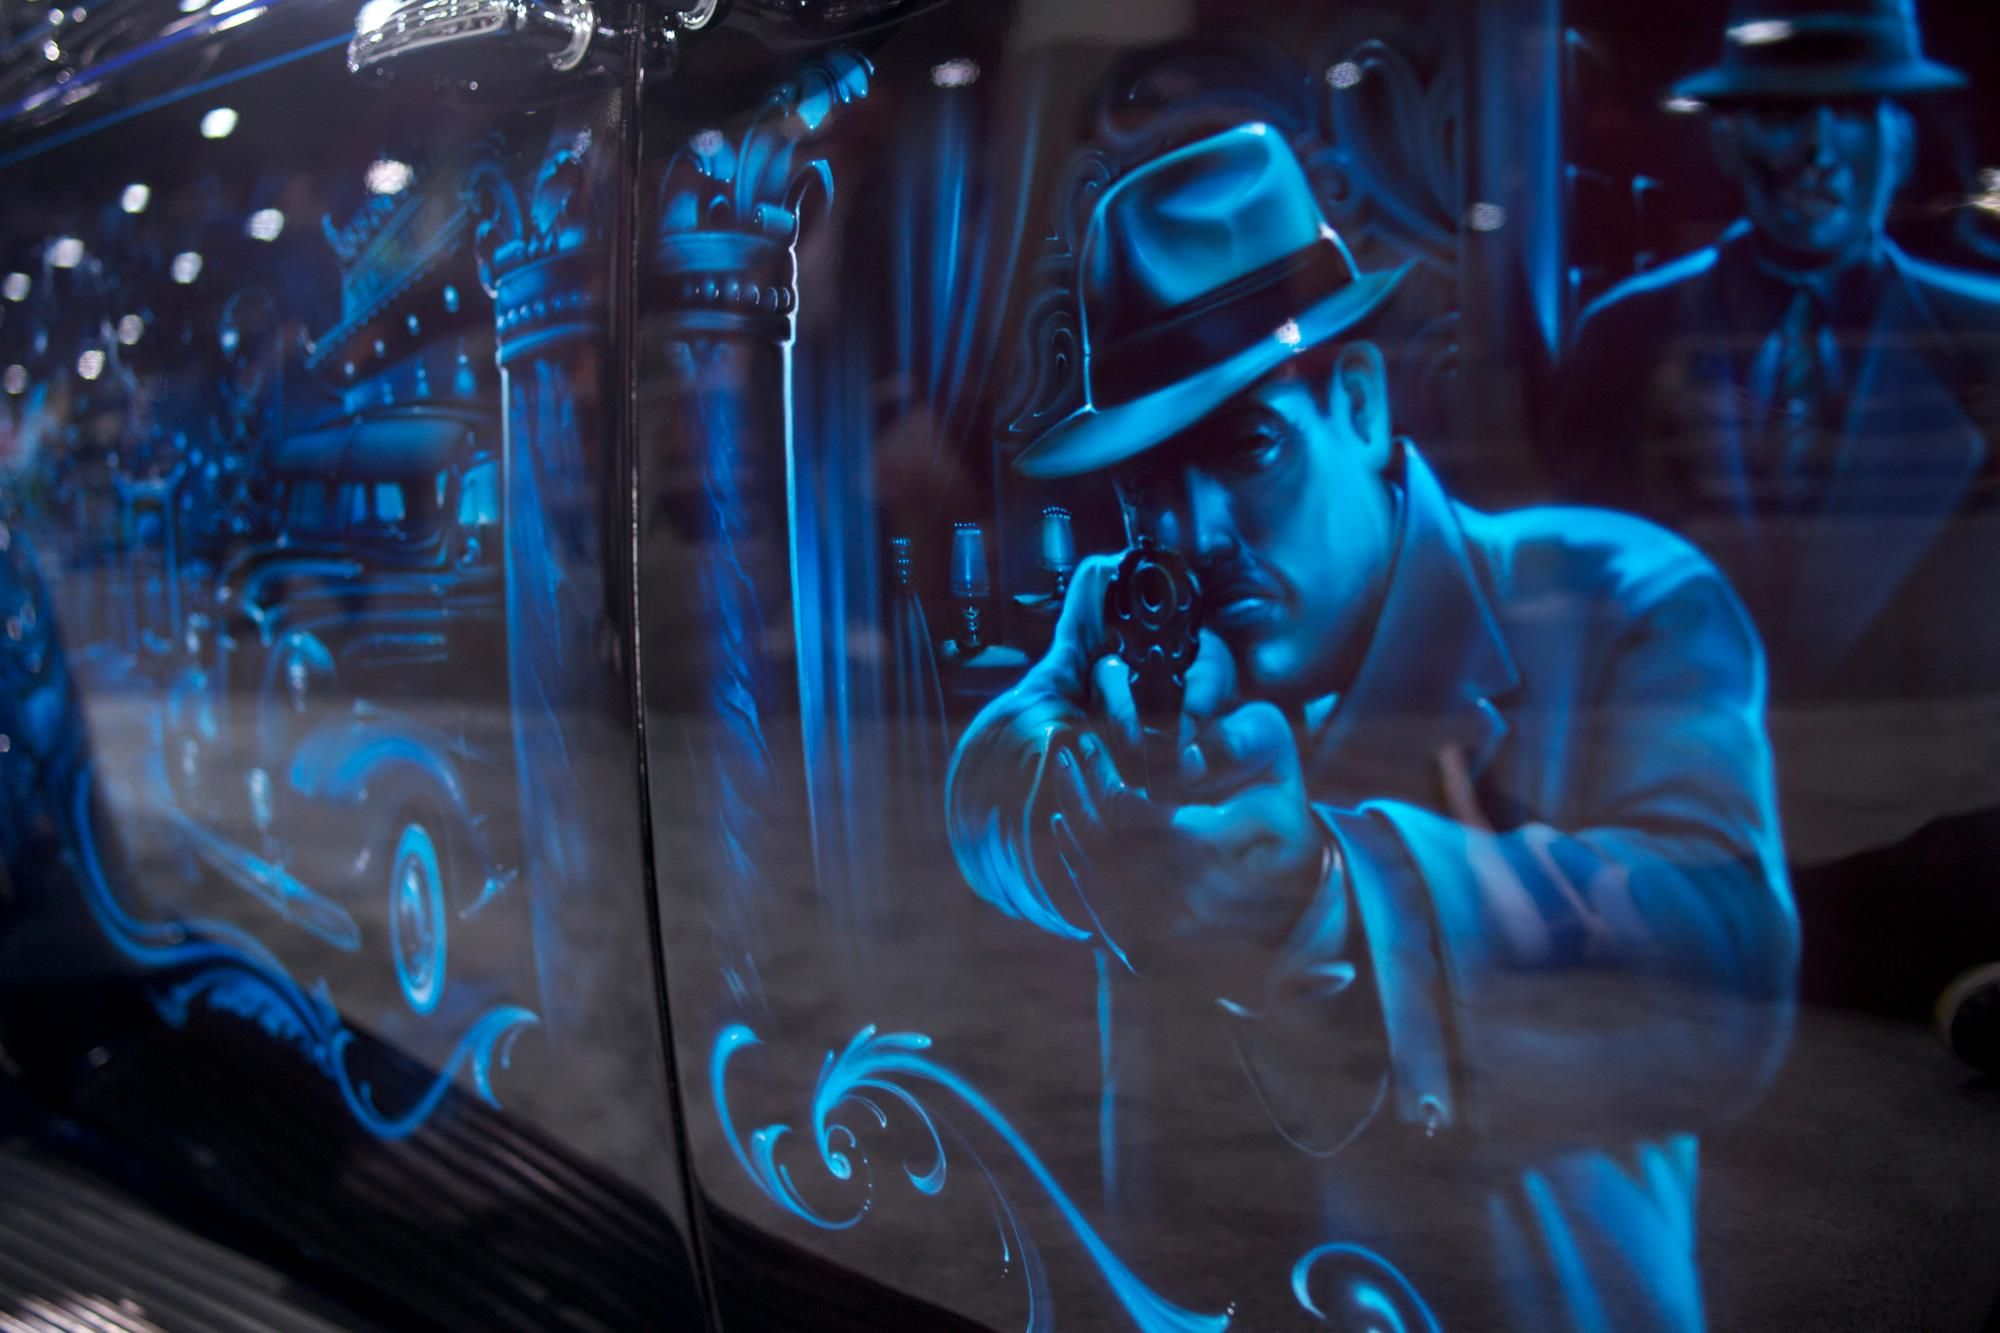 Los Angeles Car Show Gangster Squad Opens In Theaters January